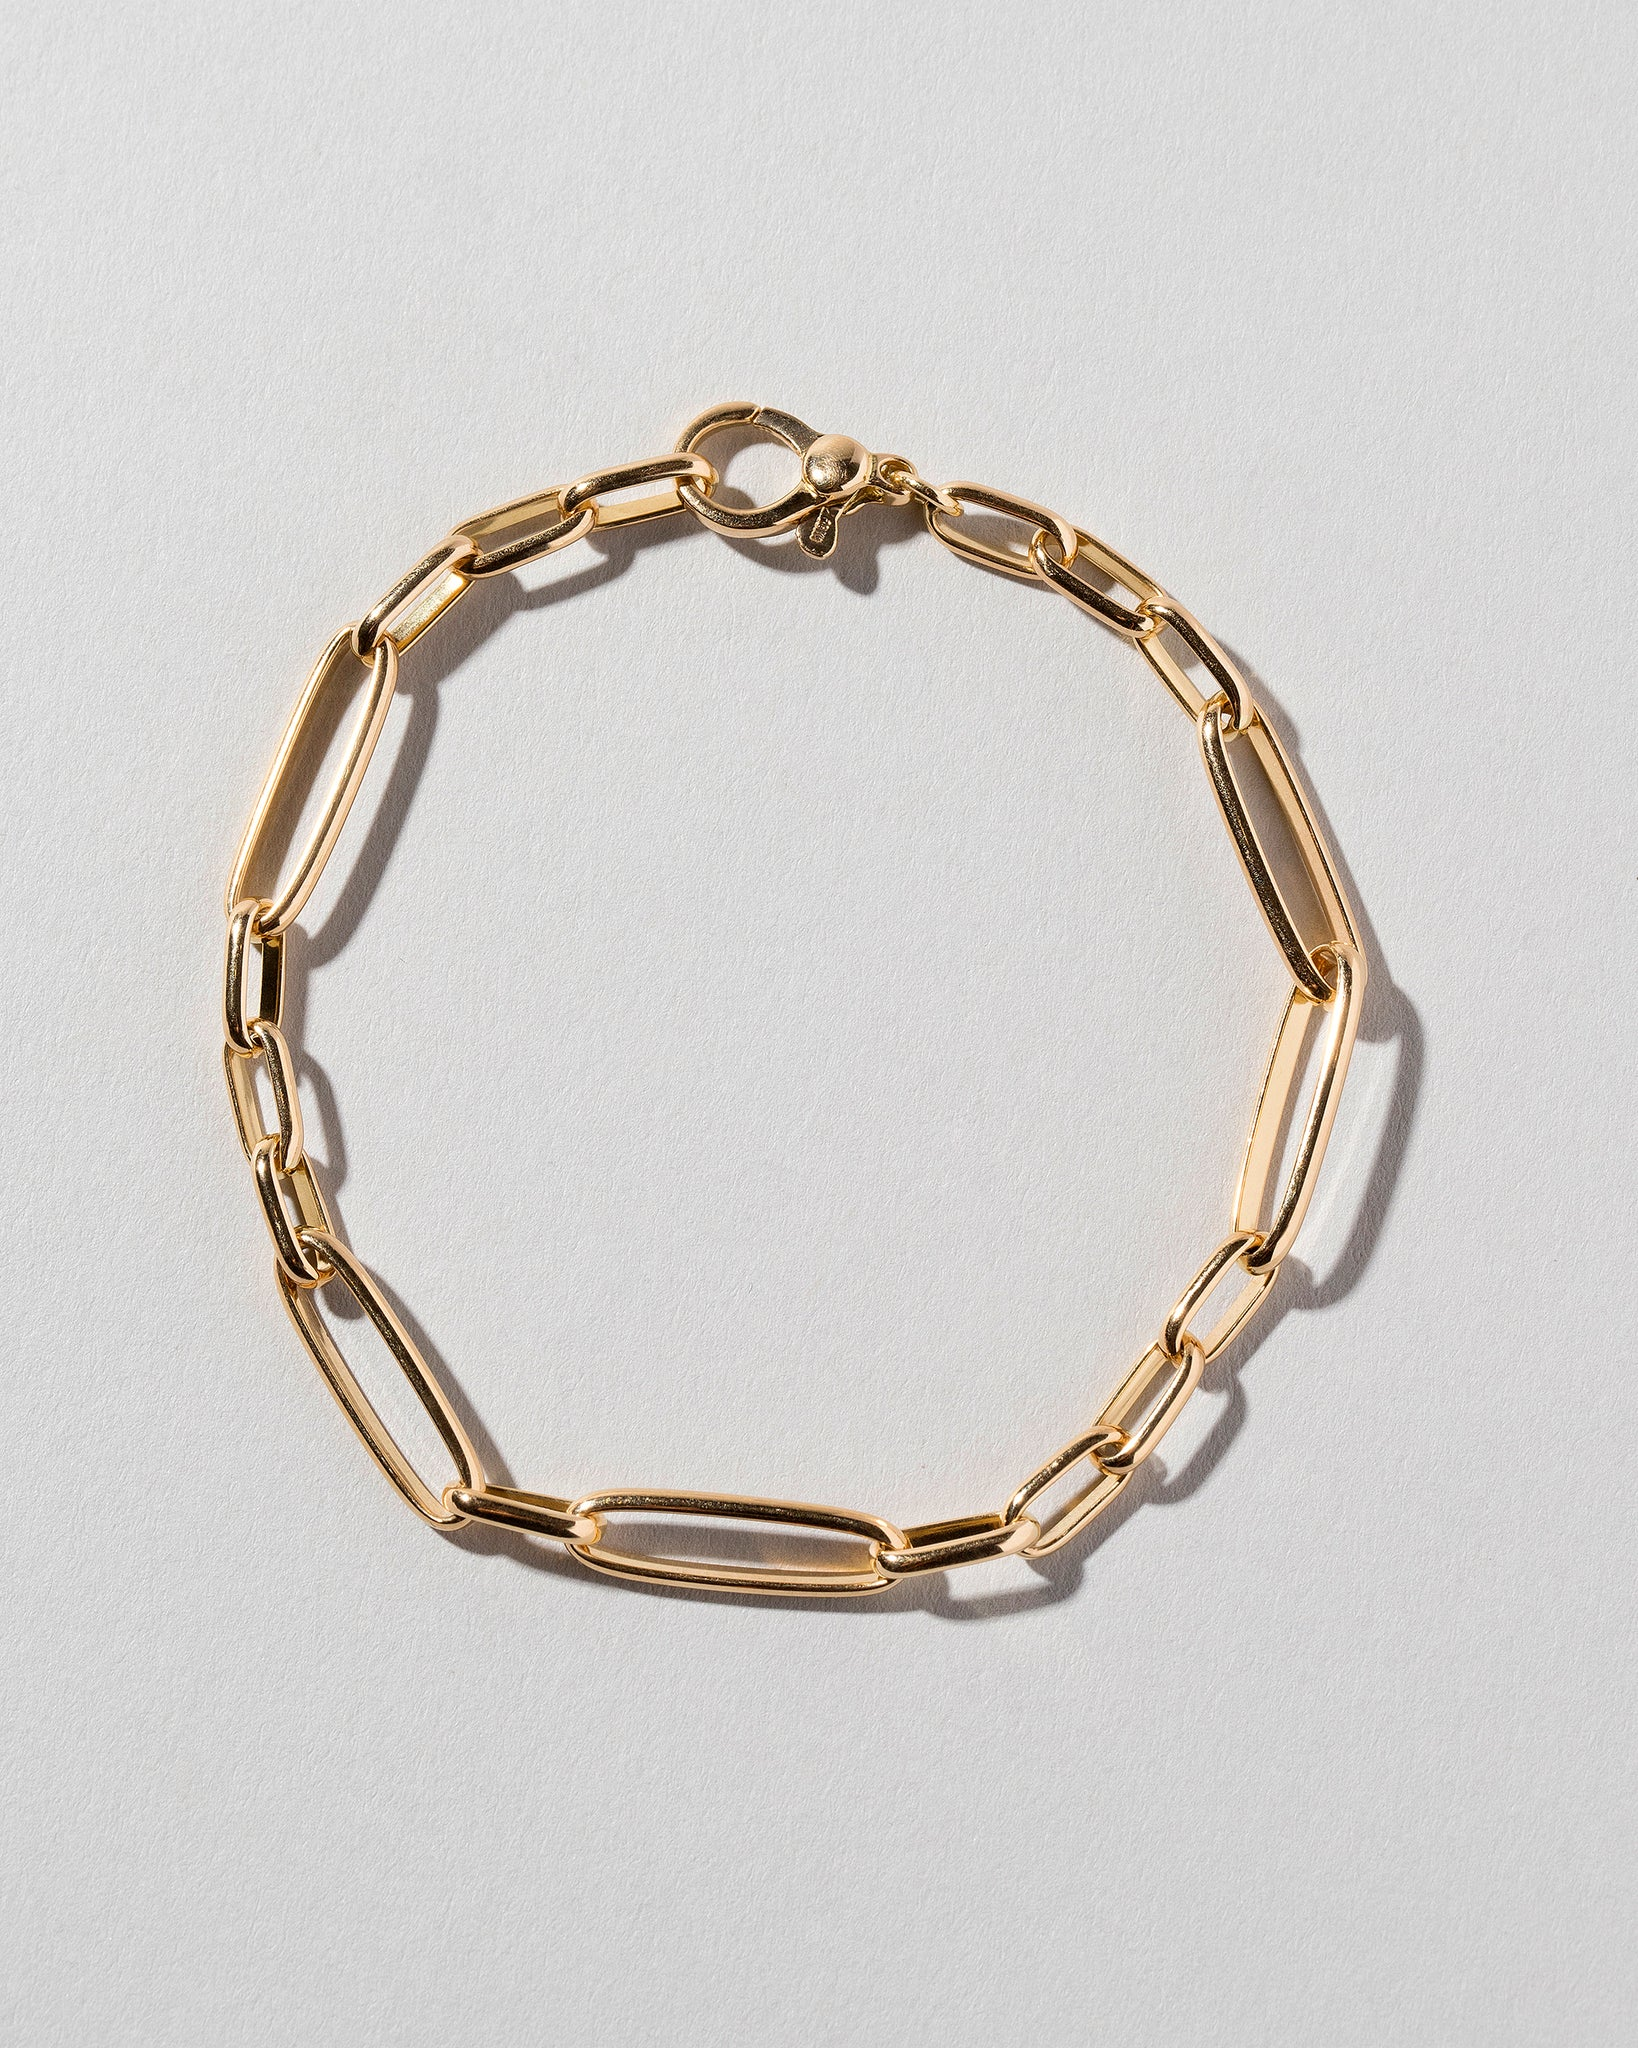 Long Loop Chain Bracelet on light color background